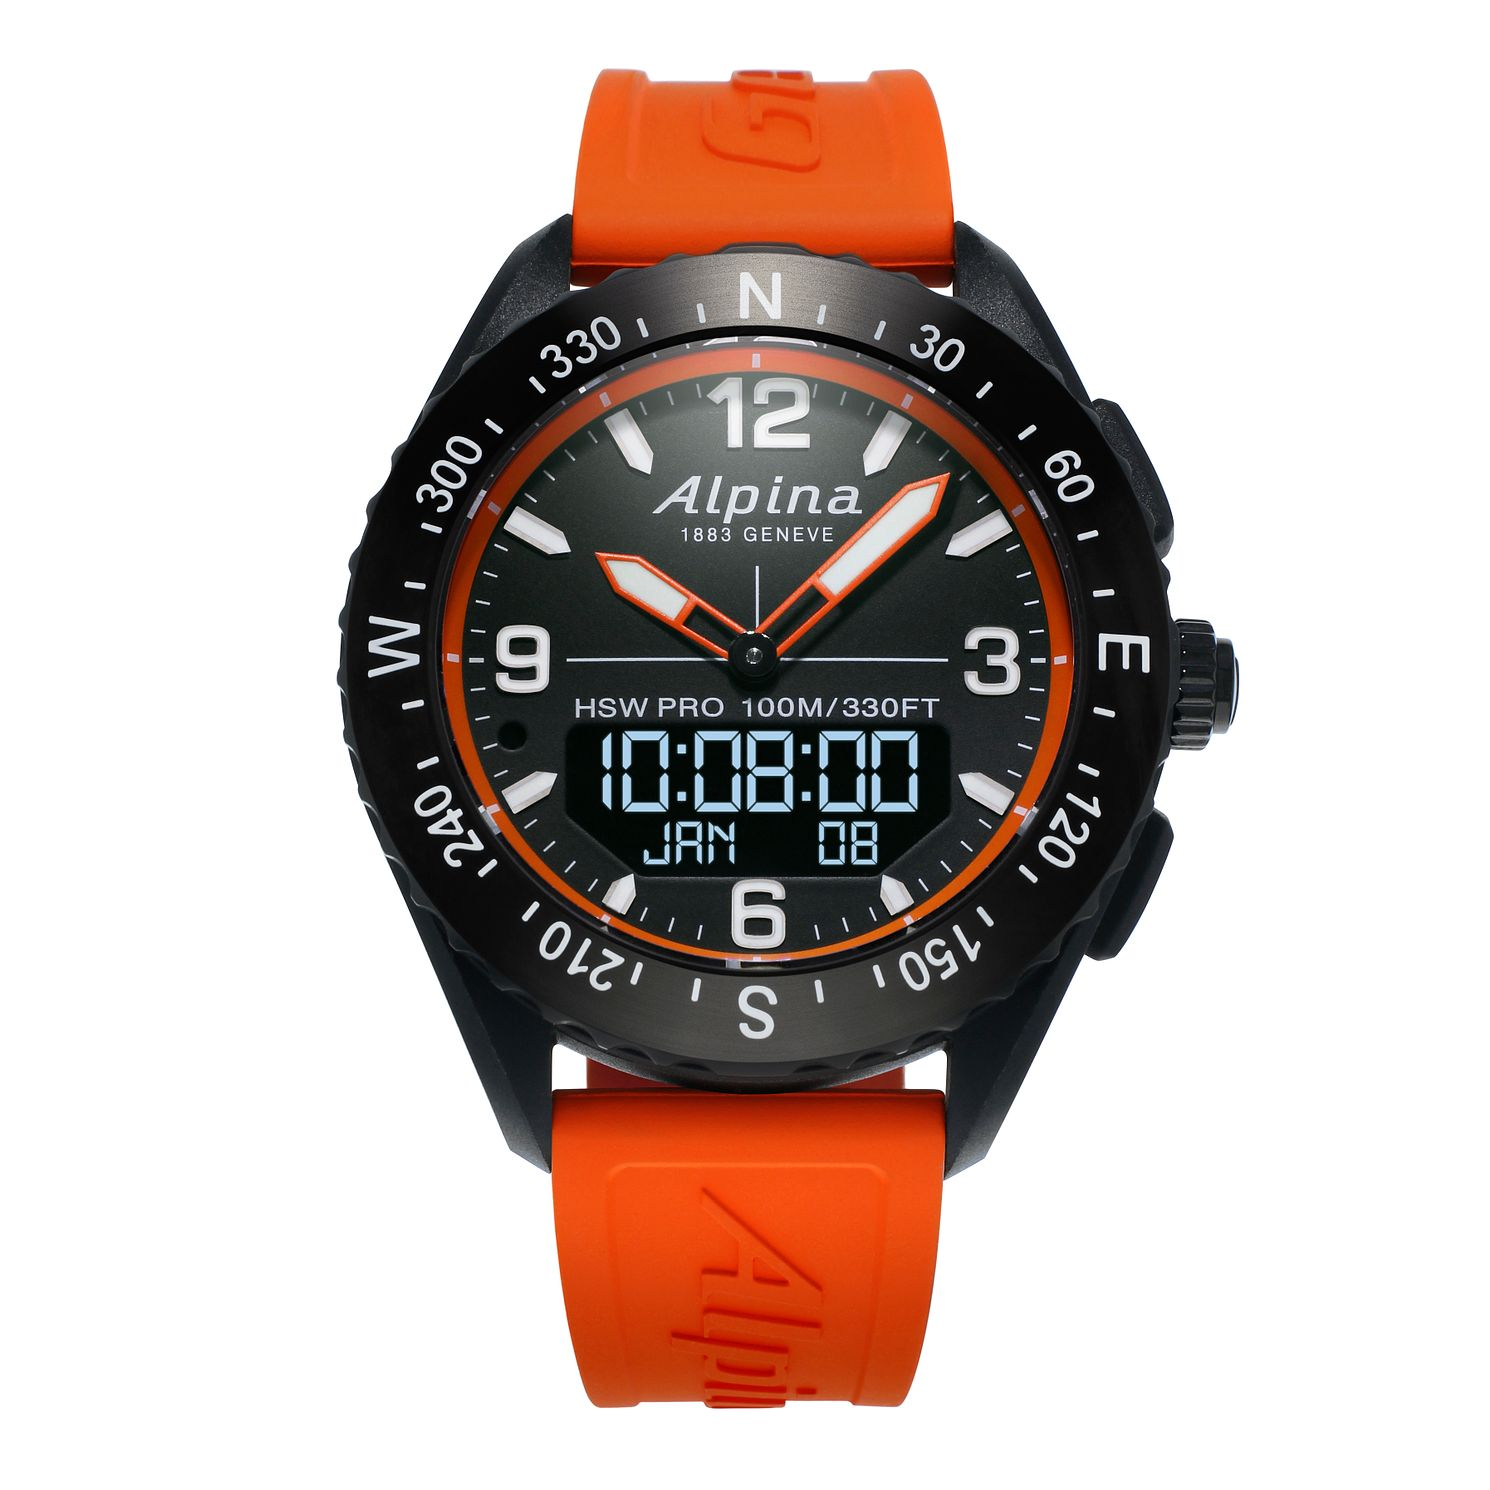 Alpina Alpinerx Men's Orange Rubber Strap Watch - Product number 2648741